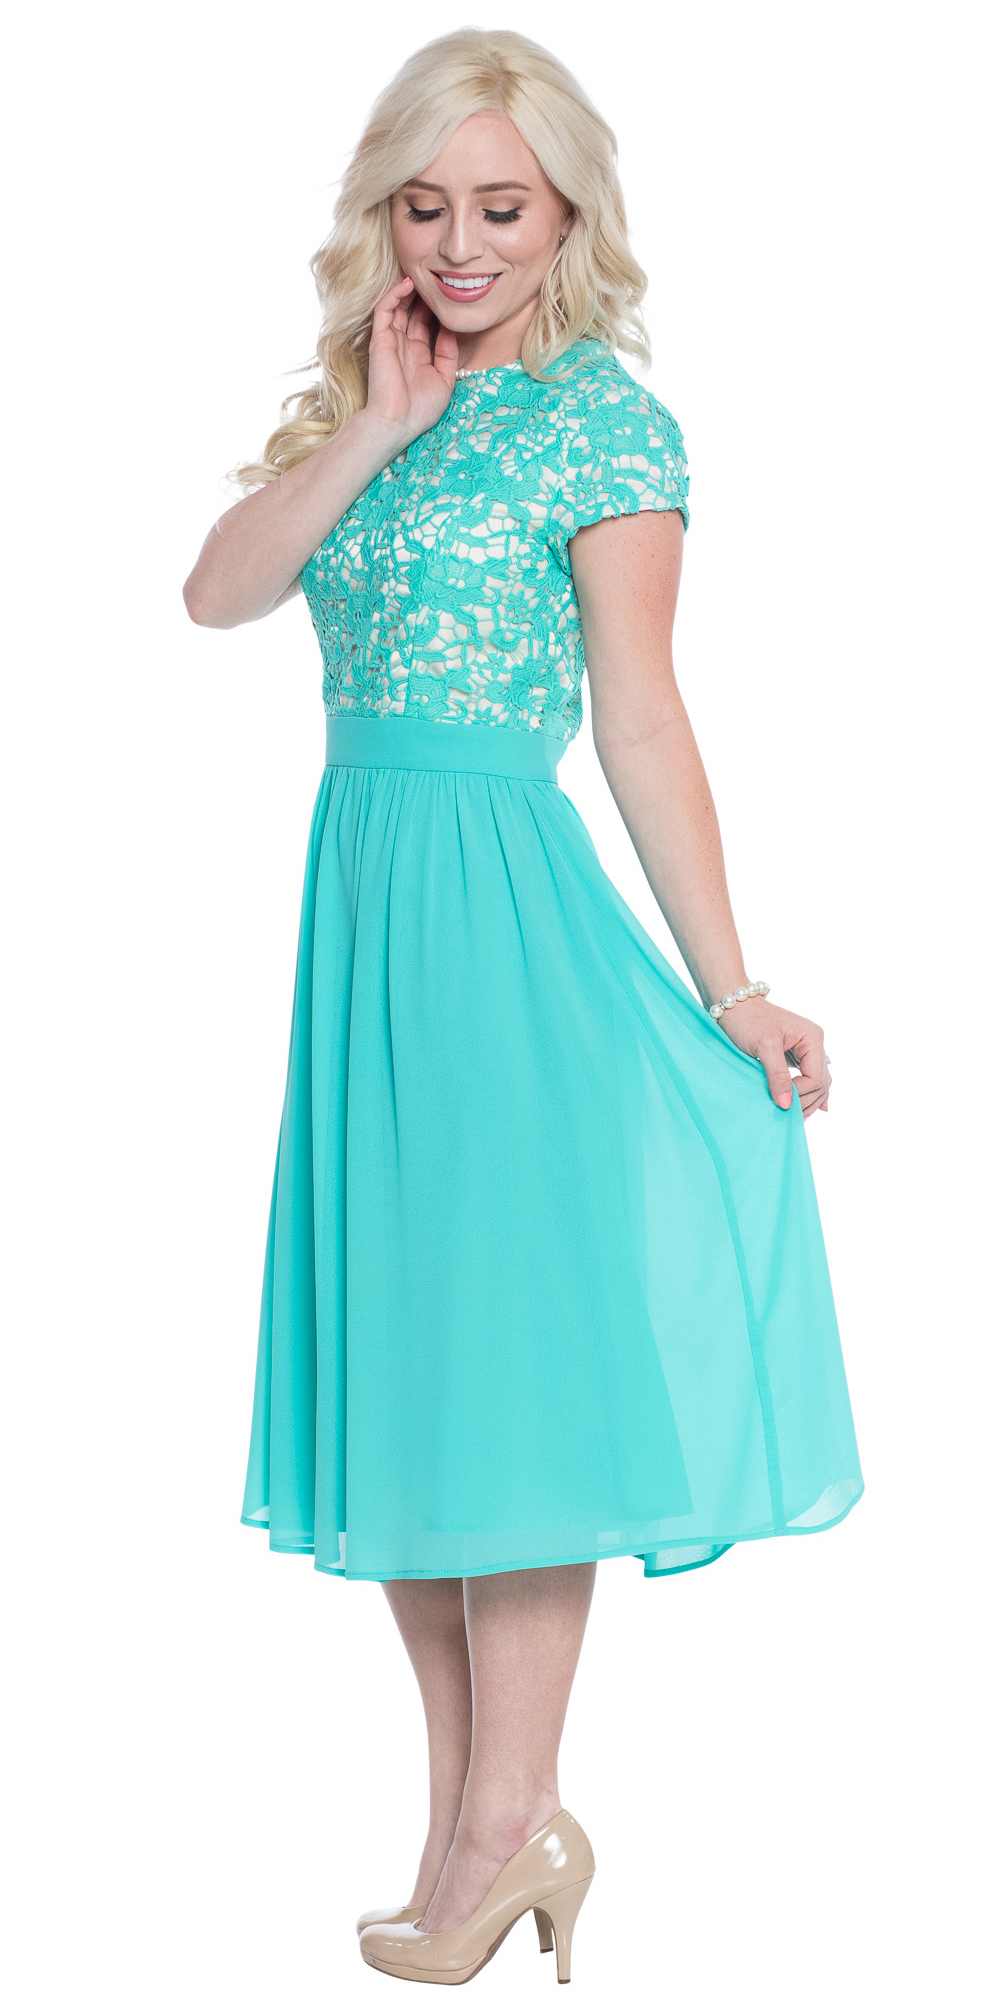 Semi-Formal Modest Bridesmaid Dress in Turquoise Blue, Tiffany Blue ...